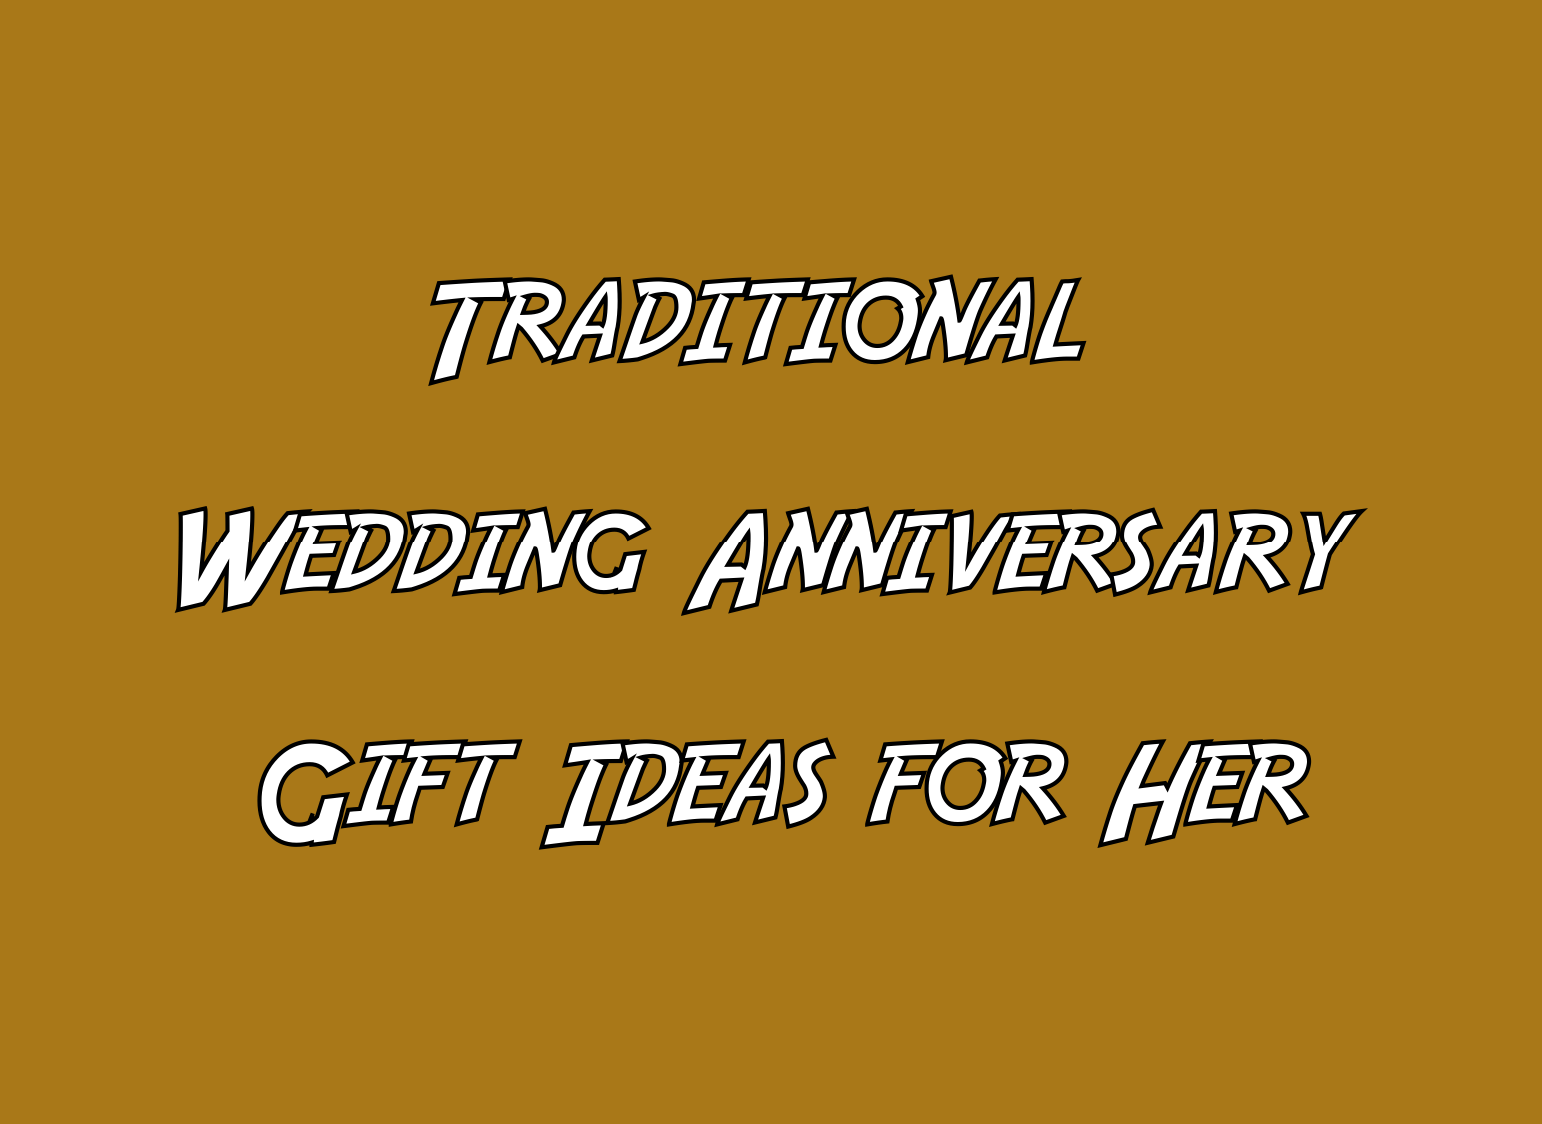 Traditional Wedding Gift Ideas For Her